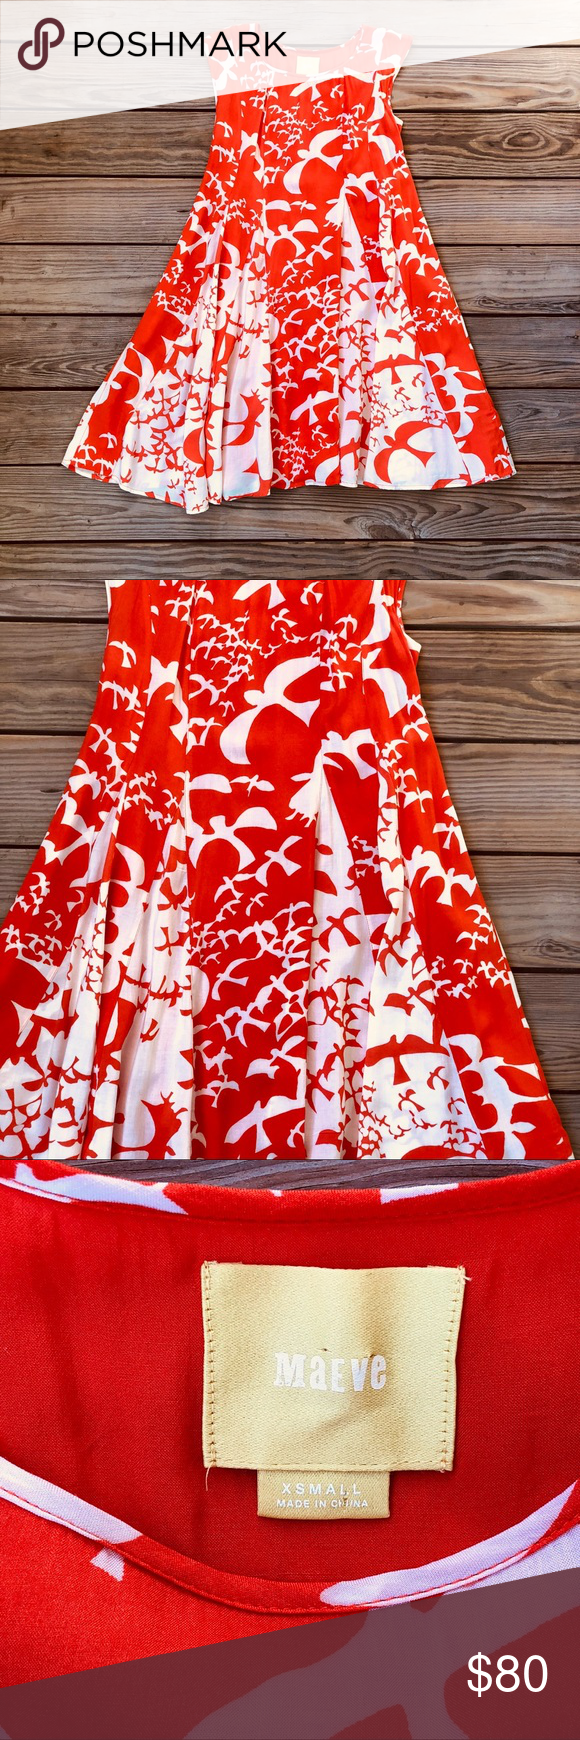 28fa63741dea1 Anthropologie Maeve Indiga Swing Dress Anthropologie Maeve Indiga Swing  Dress Orange Bird Print Lace up back Reverse insets XS Great condition  Thanks for ...